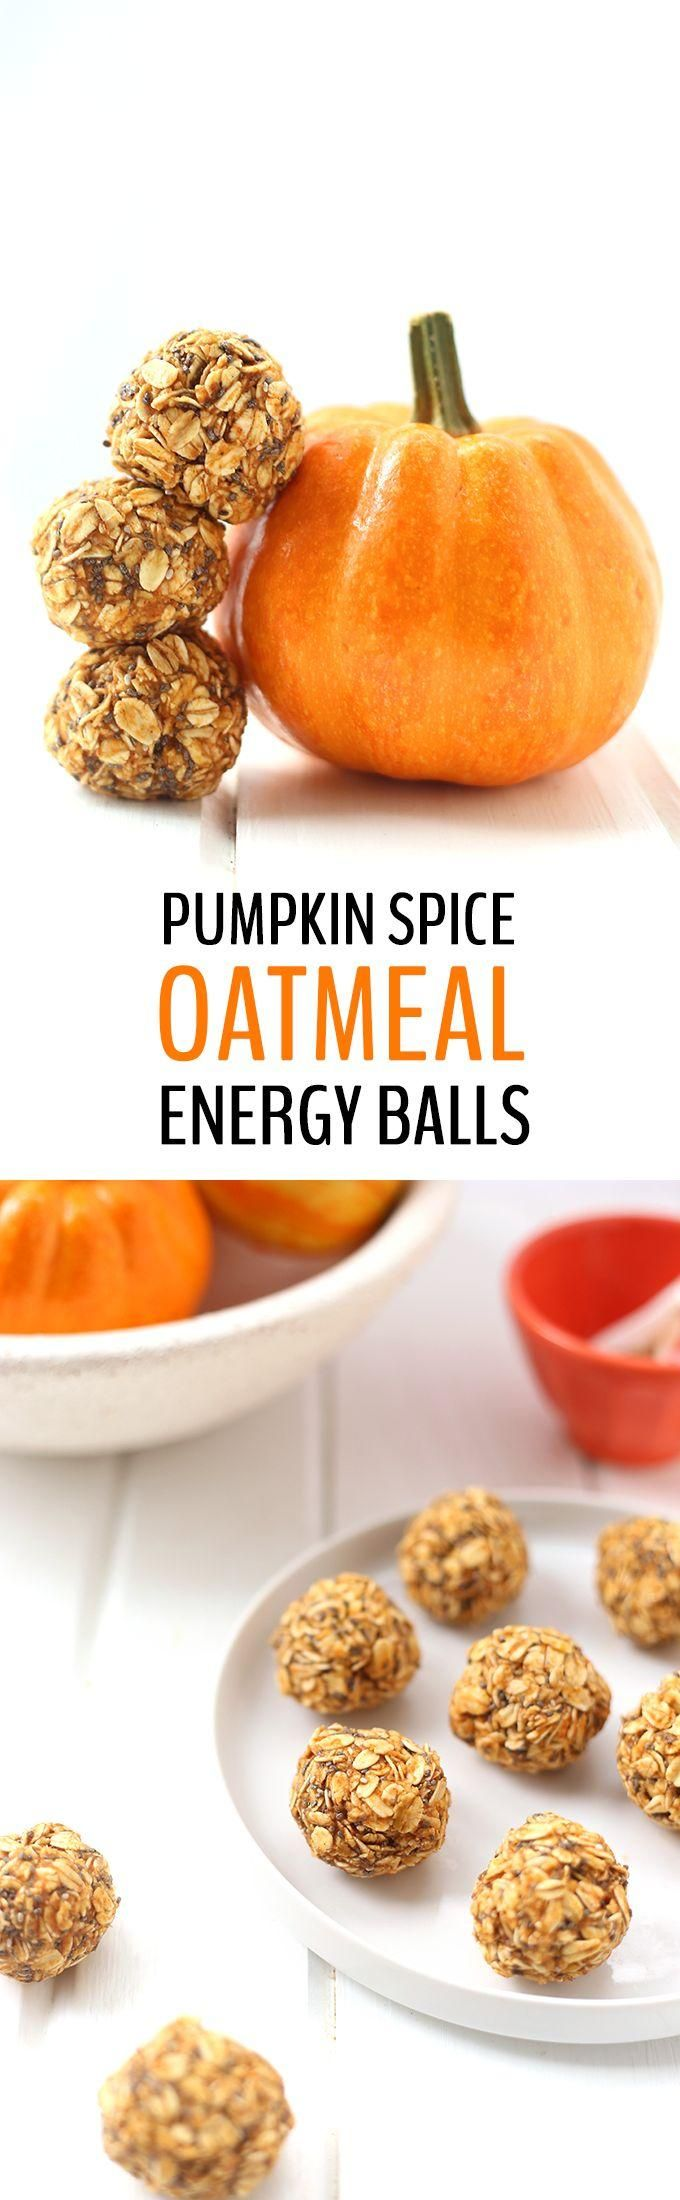 Your favorite seasonal latte just got a makeover! These Pumpkin Spice Oatmeal Energy Balls made with pureed pumpkin, oatmeal and pumpkin spice will keep you satisfied all season long.: